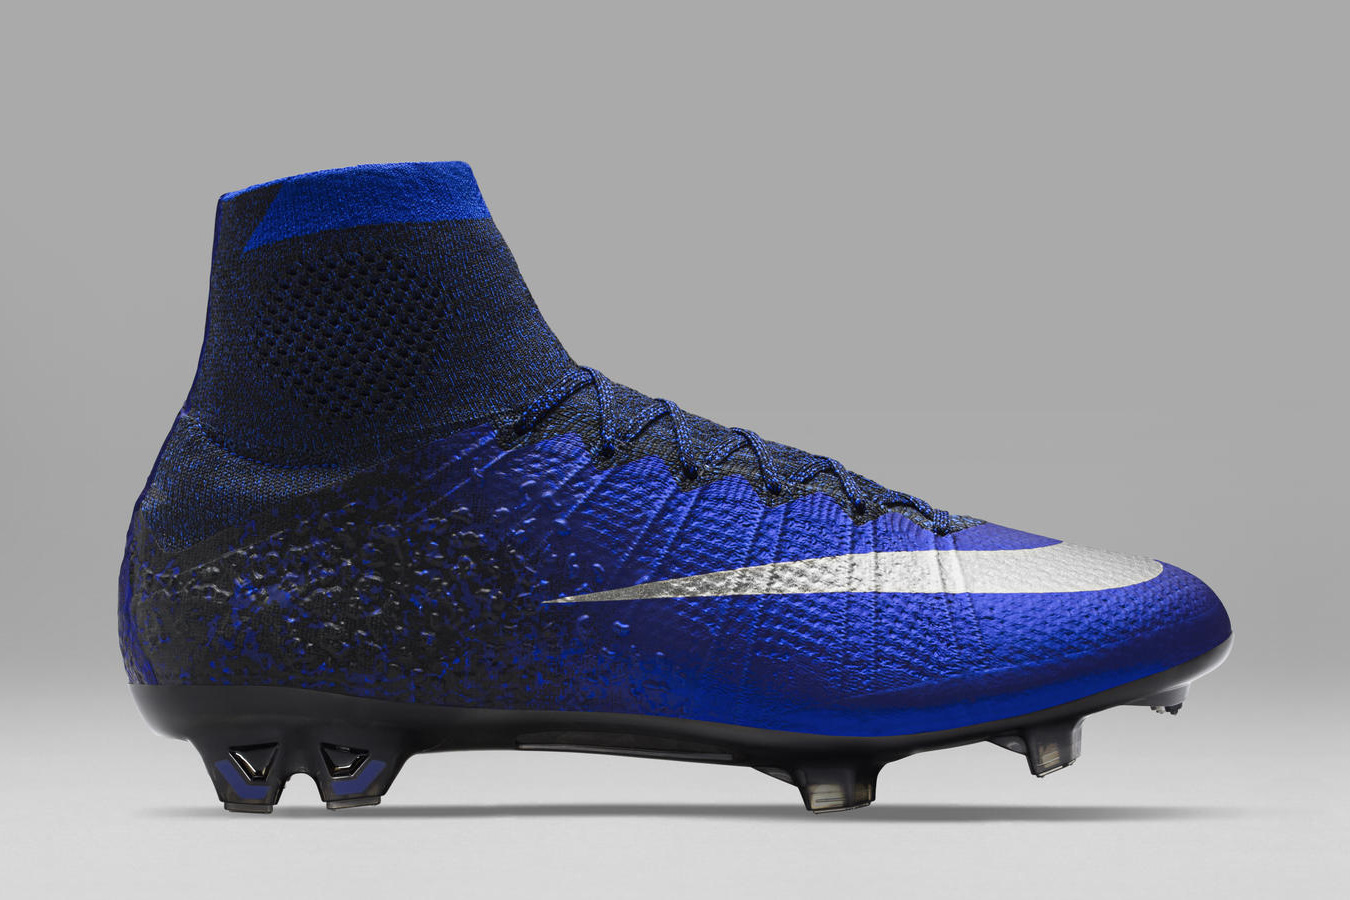 """Nike Unveils the """"Natural Diamond"""" Mercurial Superfly for Cristiano Ronaldo"""